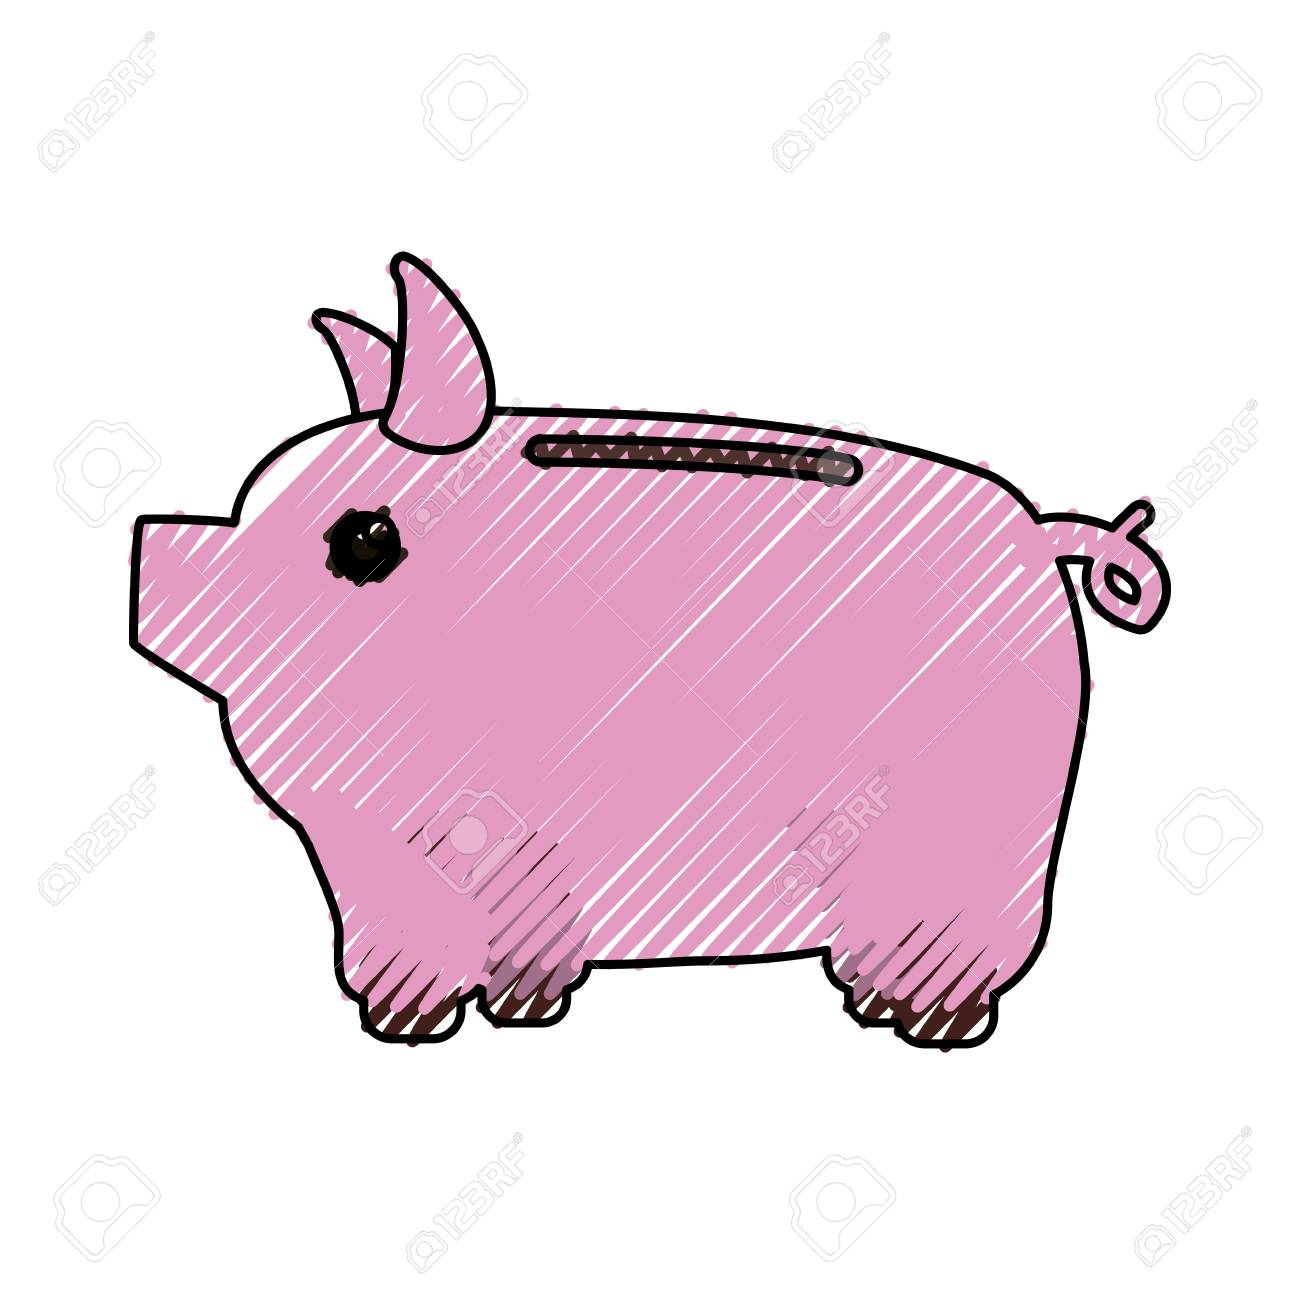 1300x1300 Save Money Inside Pig In The Home, Vector Illustration Royalty